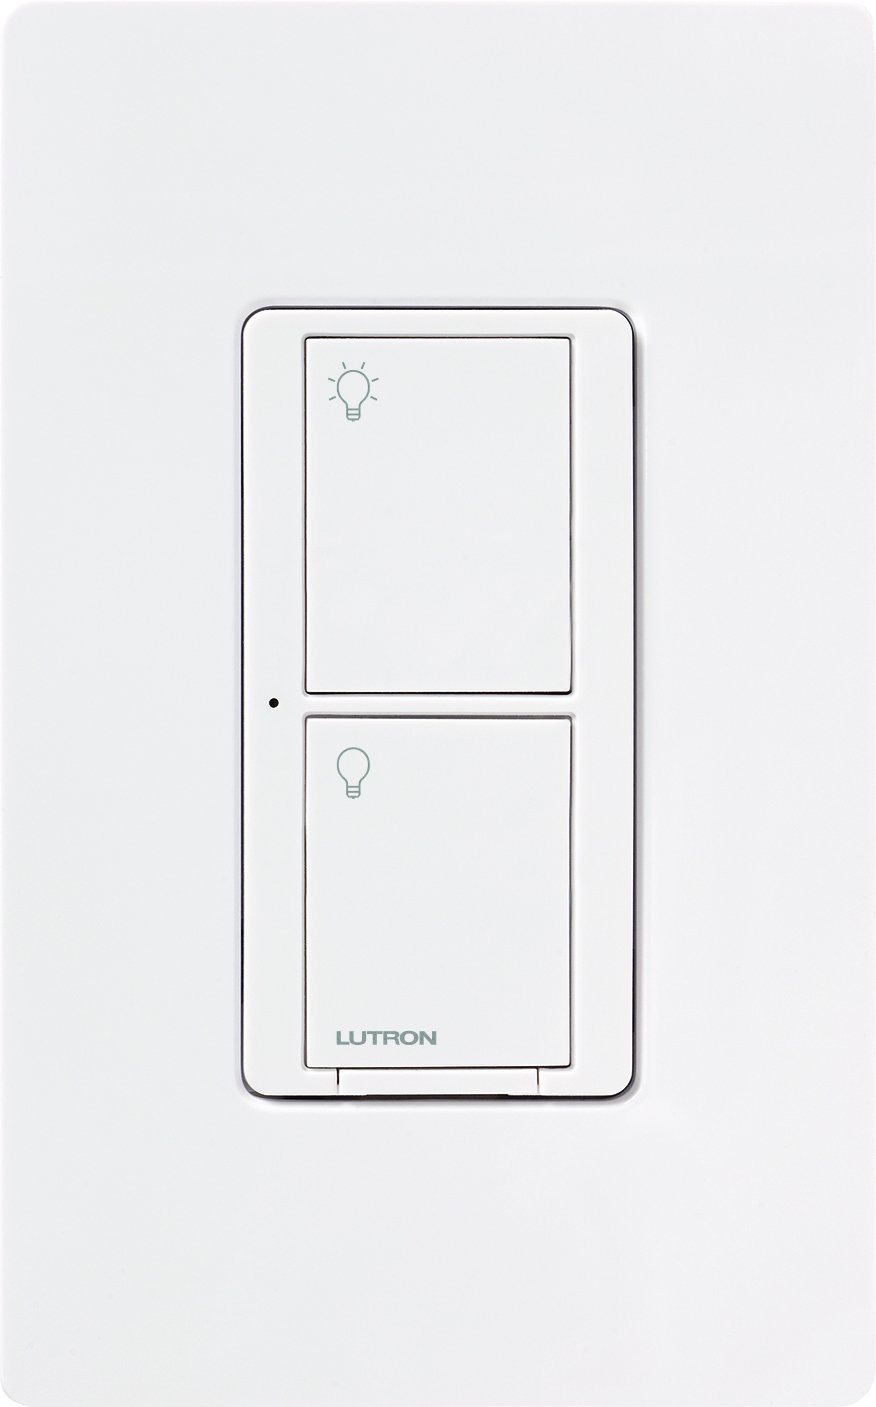 Lutron Pd 6ans Wh Caseta 6a Neutral Switch Electrical Distribution Way Light Uk Wiring Double Pole Switcher 6 Amp White